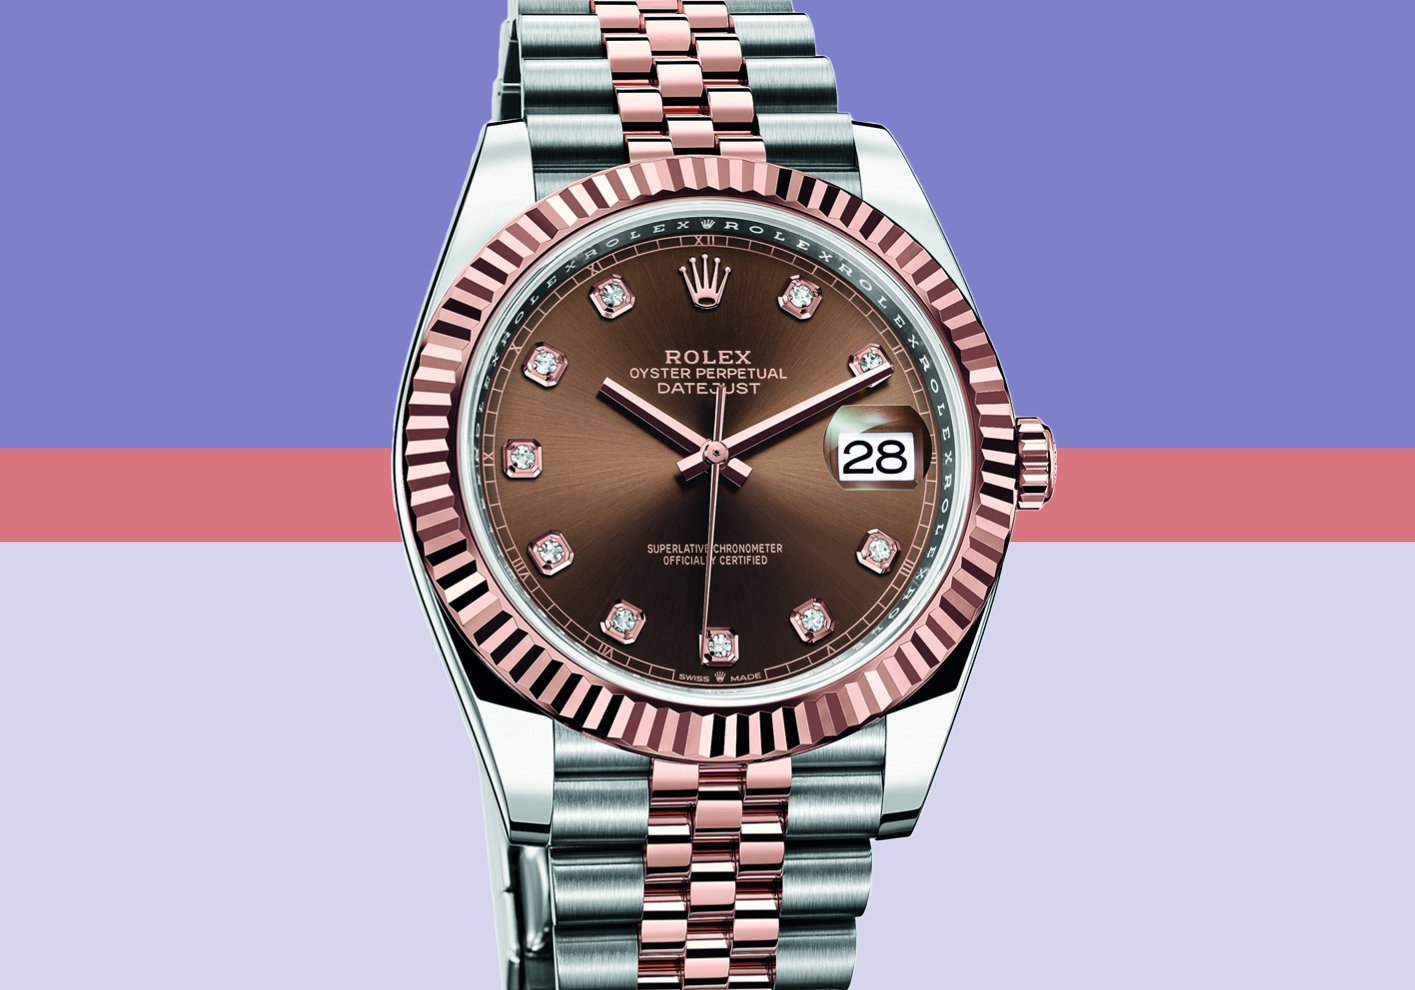 Rolex Datejust 41 Oystersteel and 18ct yellow gold, £12,450 (Datejust 41 range, from £6,150)